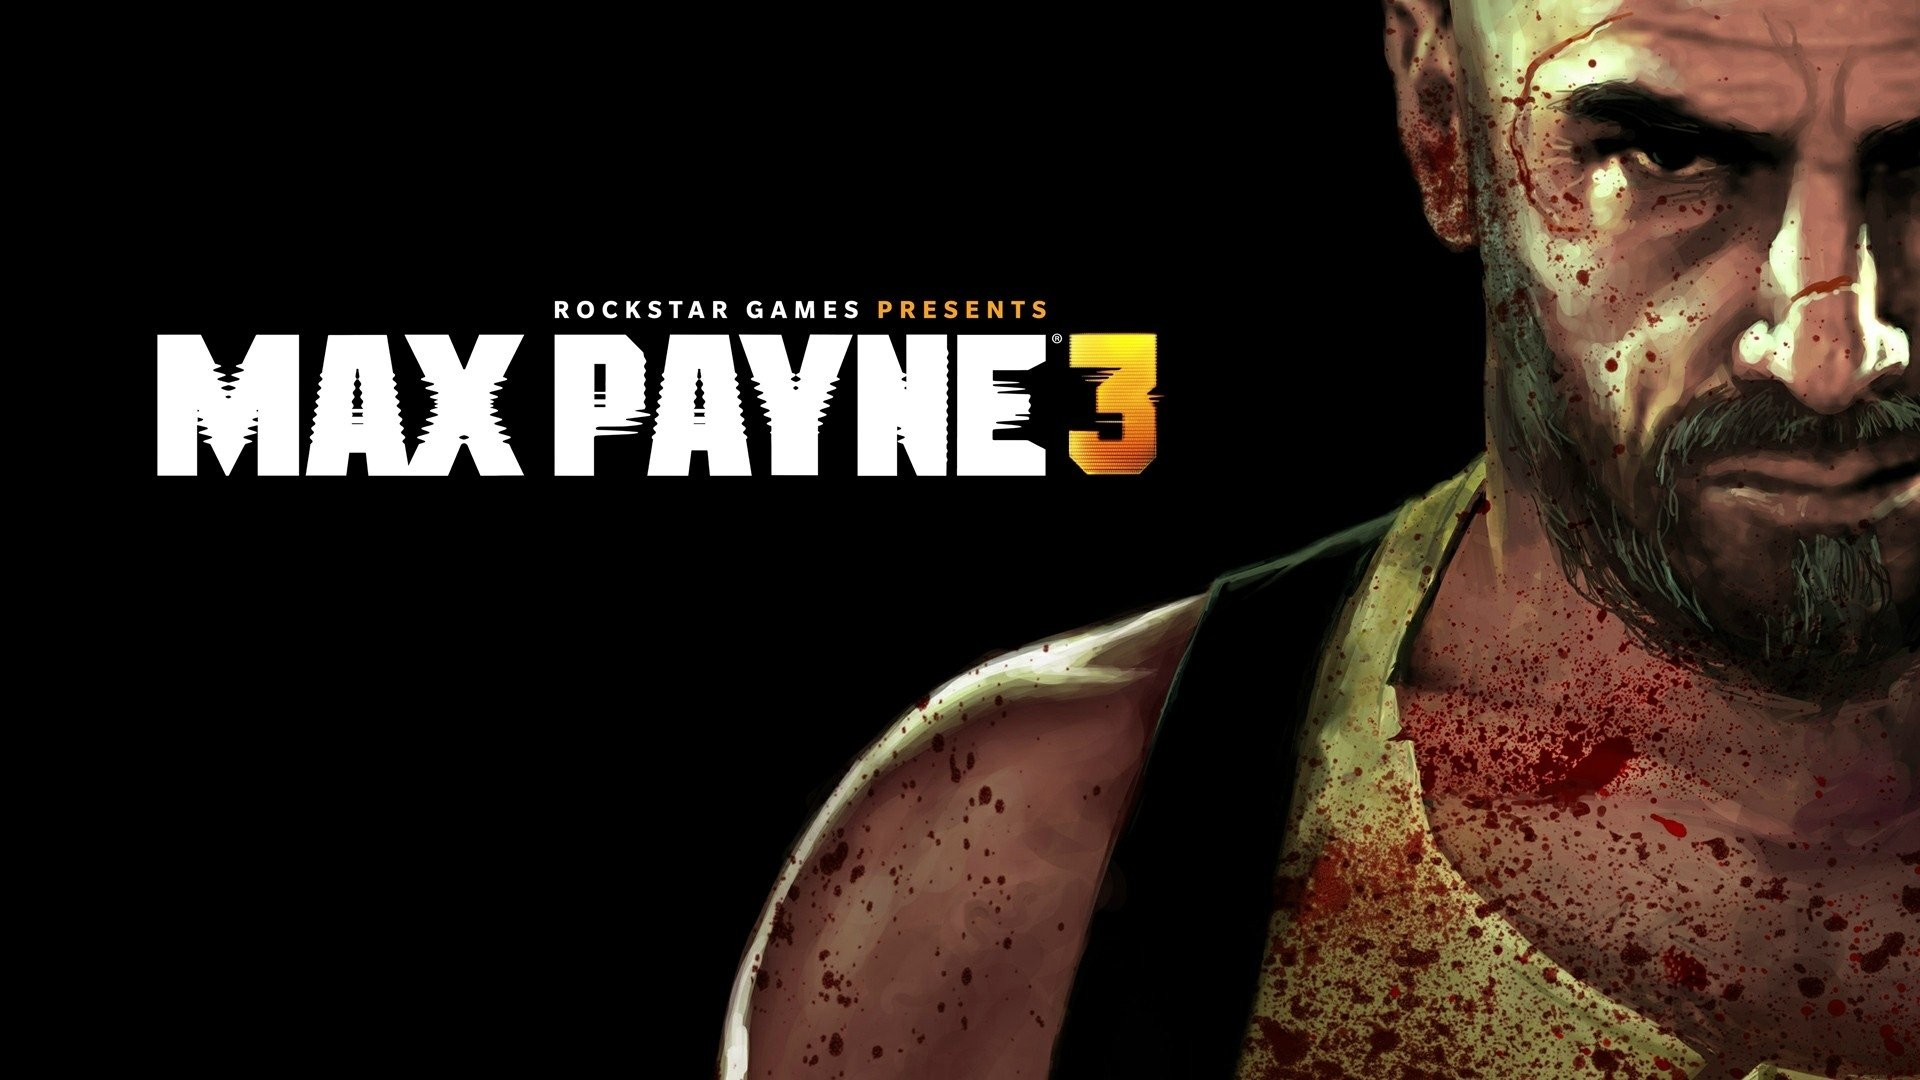 1920x1080 Video Game - Max Payne 3 Wallpaper